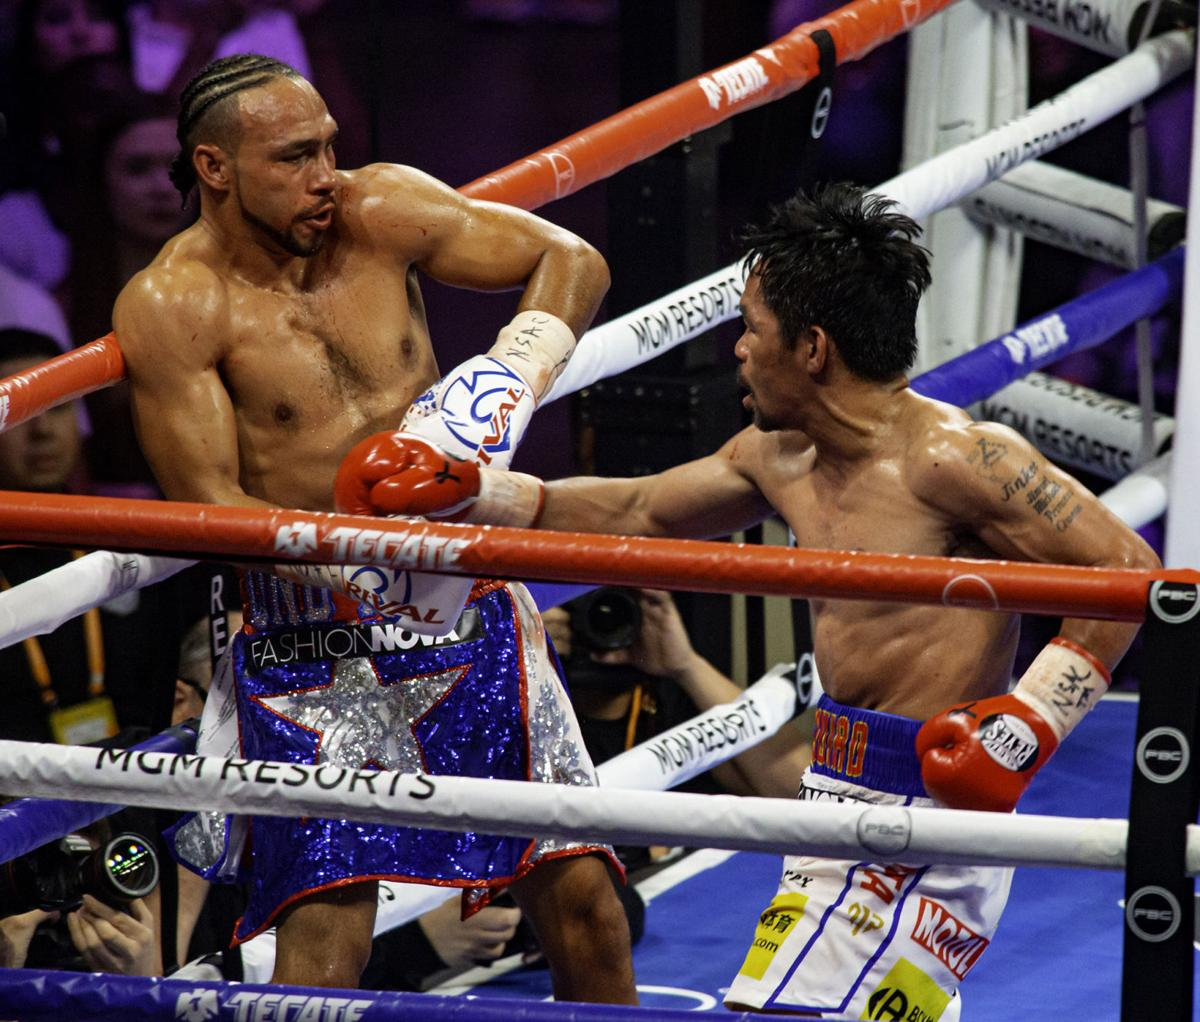 Where will Pacquiao go from here?